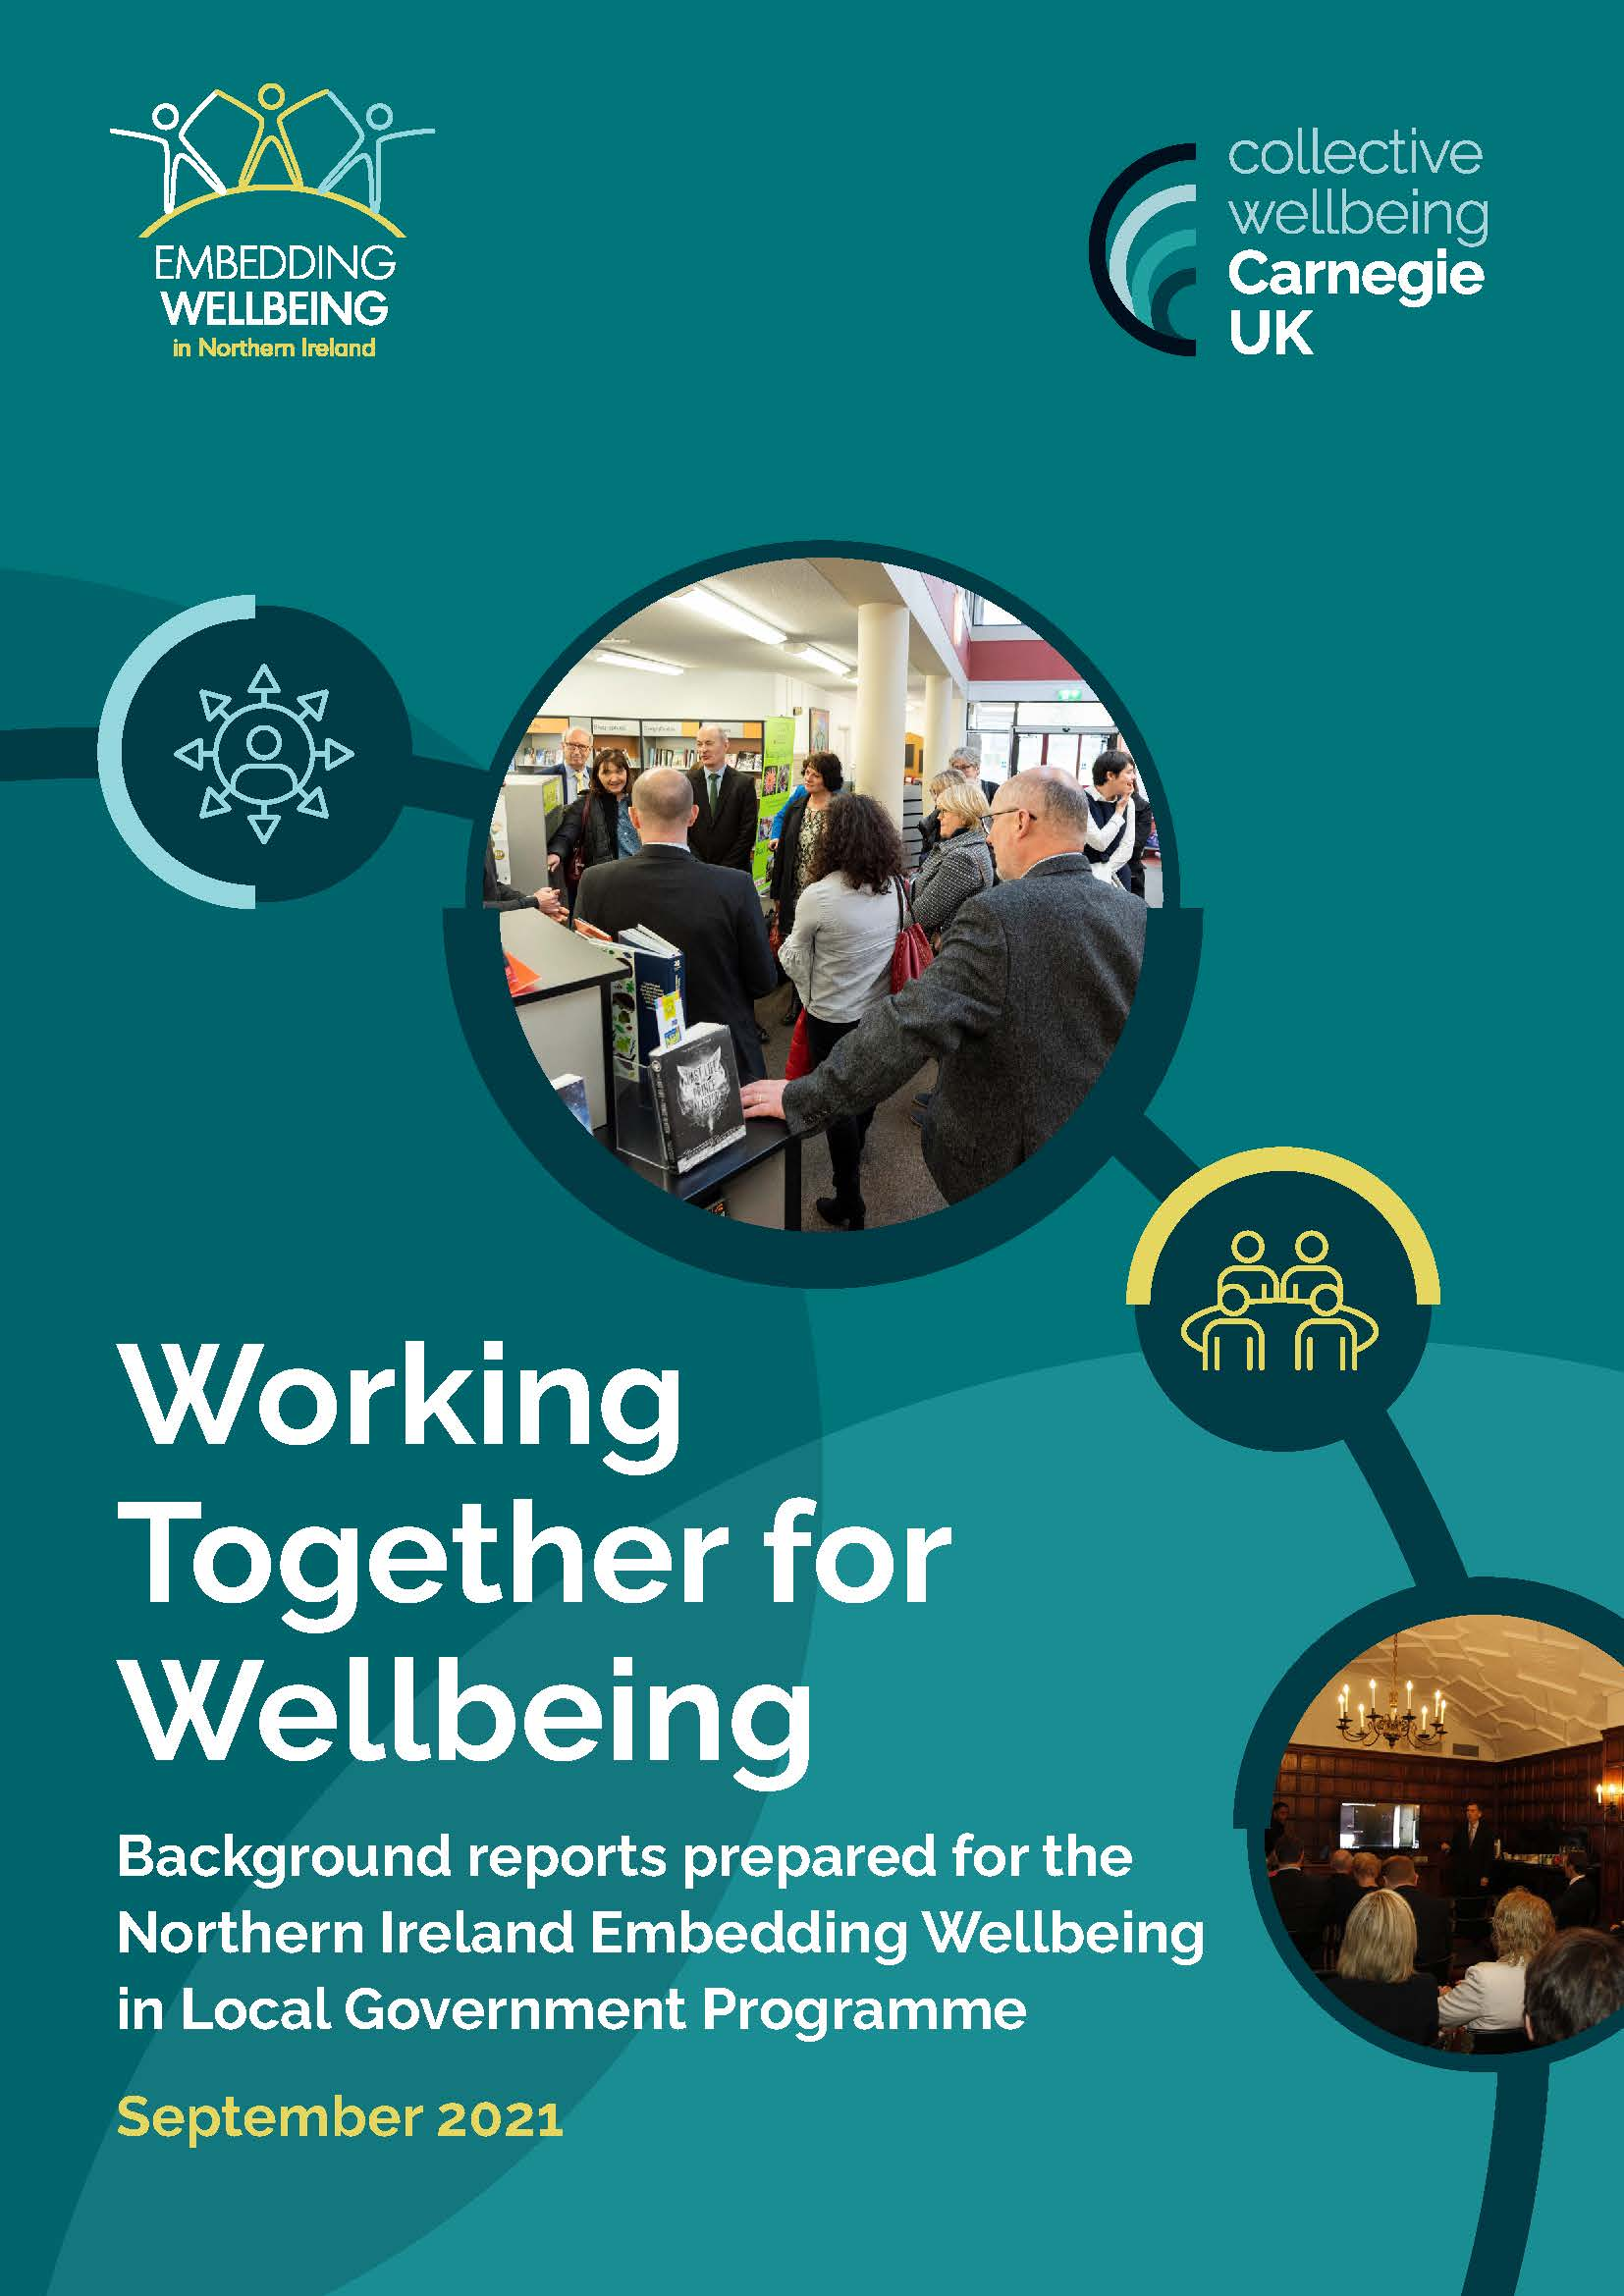 Working Together for Wellbeing: Background reports produced as part of the Northern Ireland Embedding Wellbeing Programme (Background report)